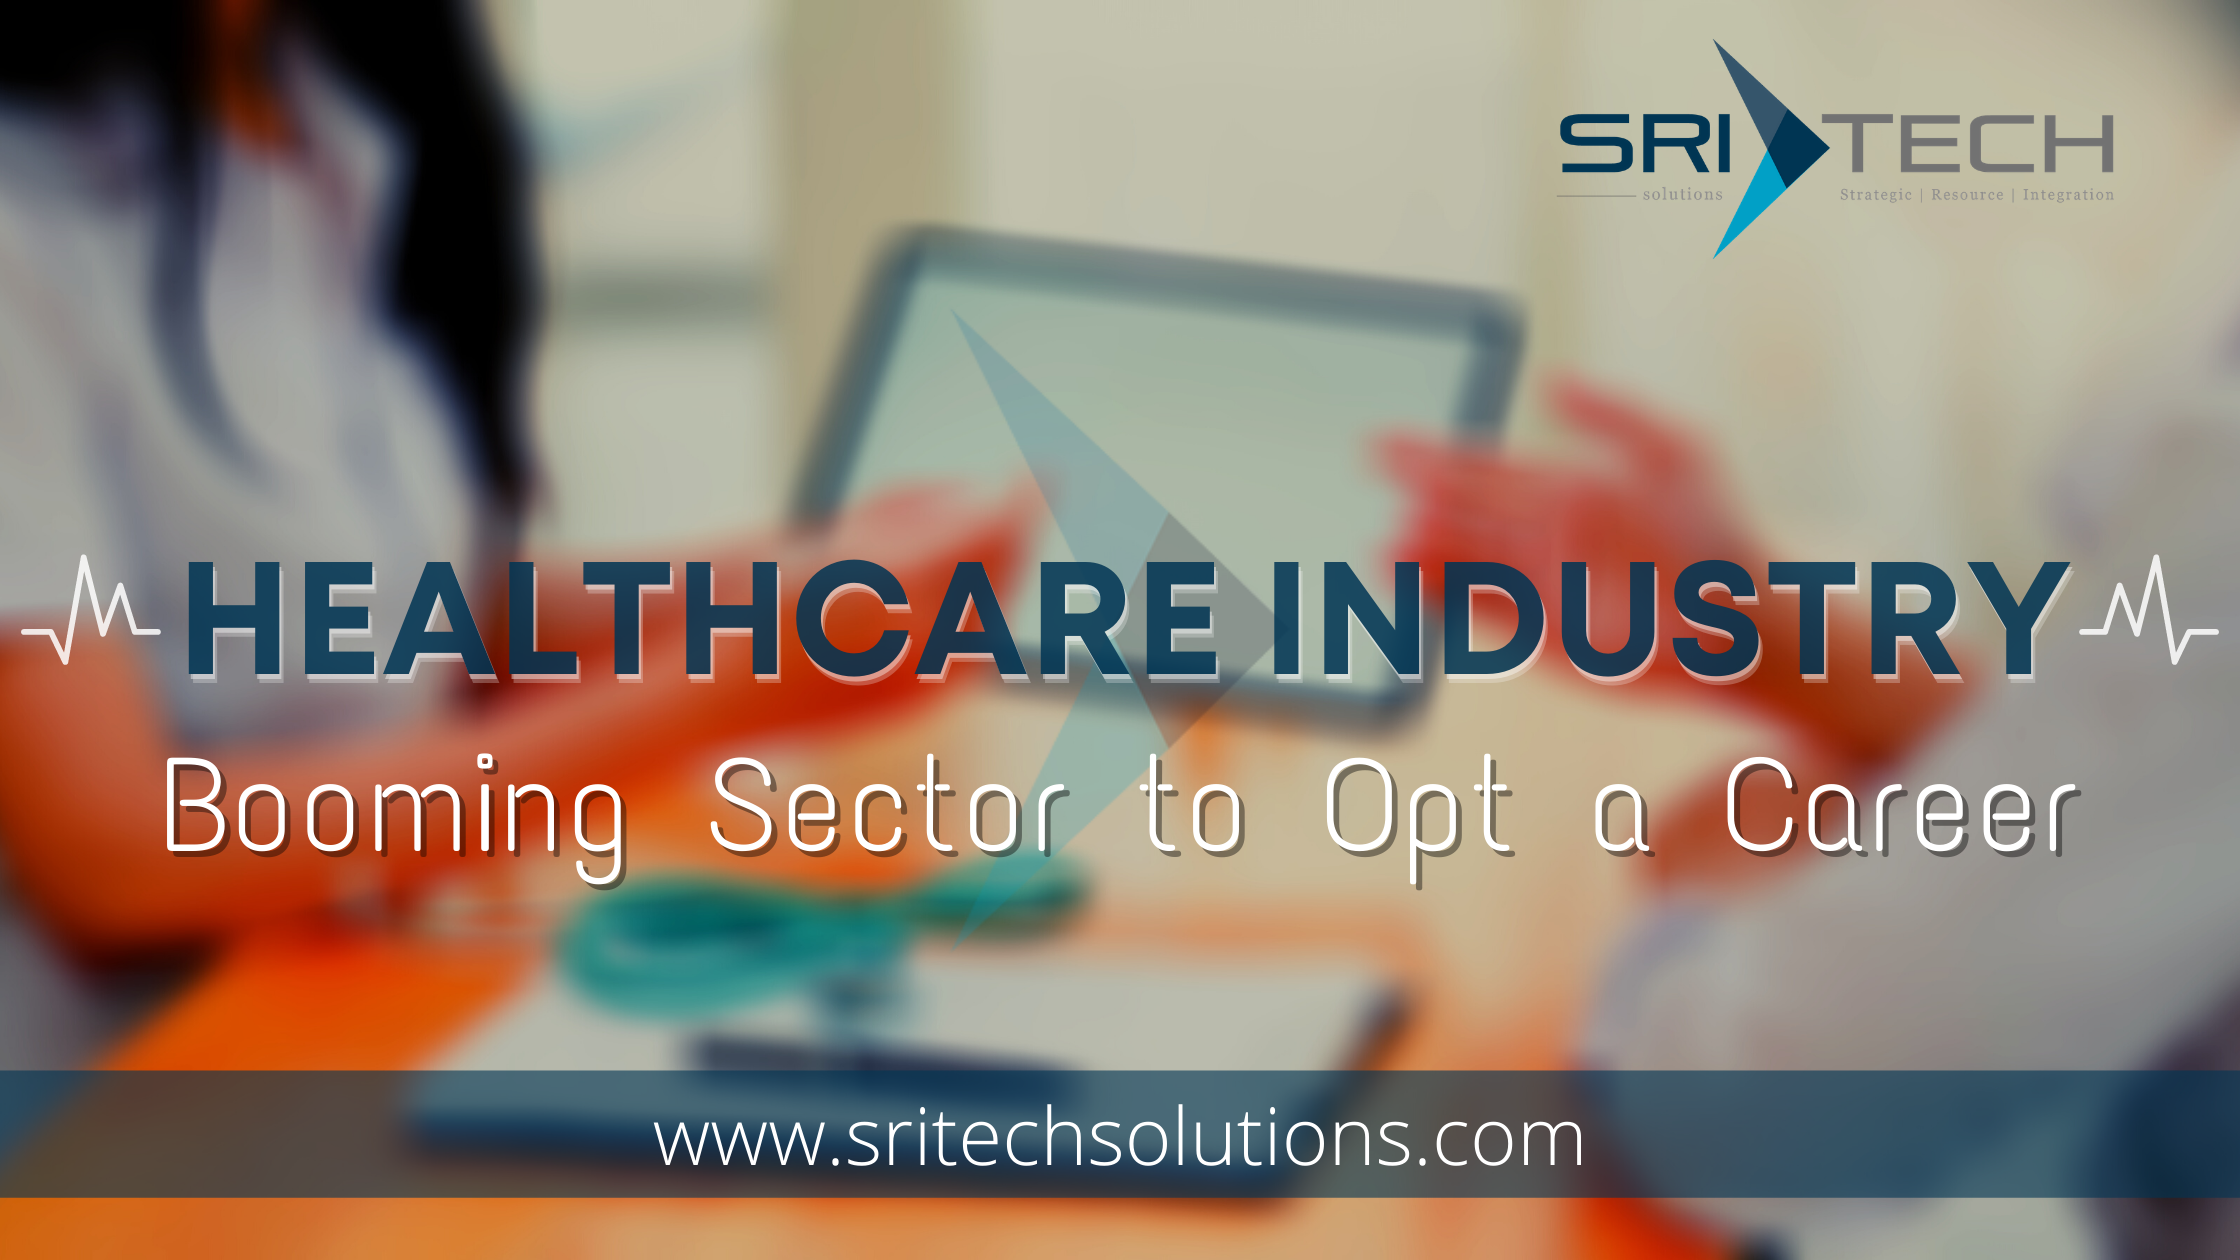 Healthcare Industry - Booming Sector to Opt a Career